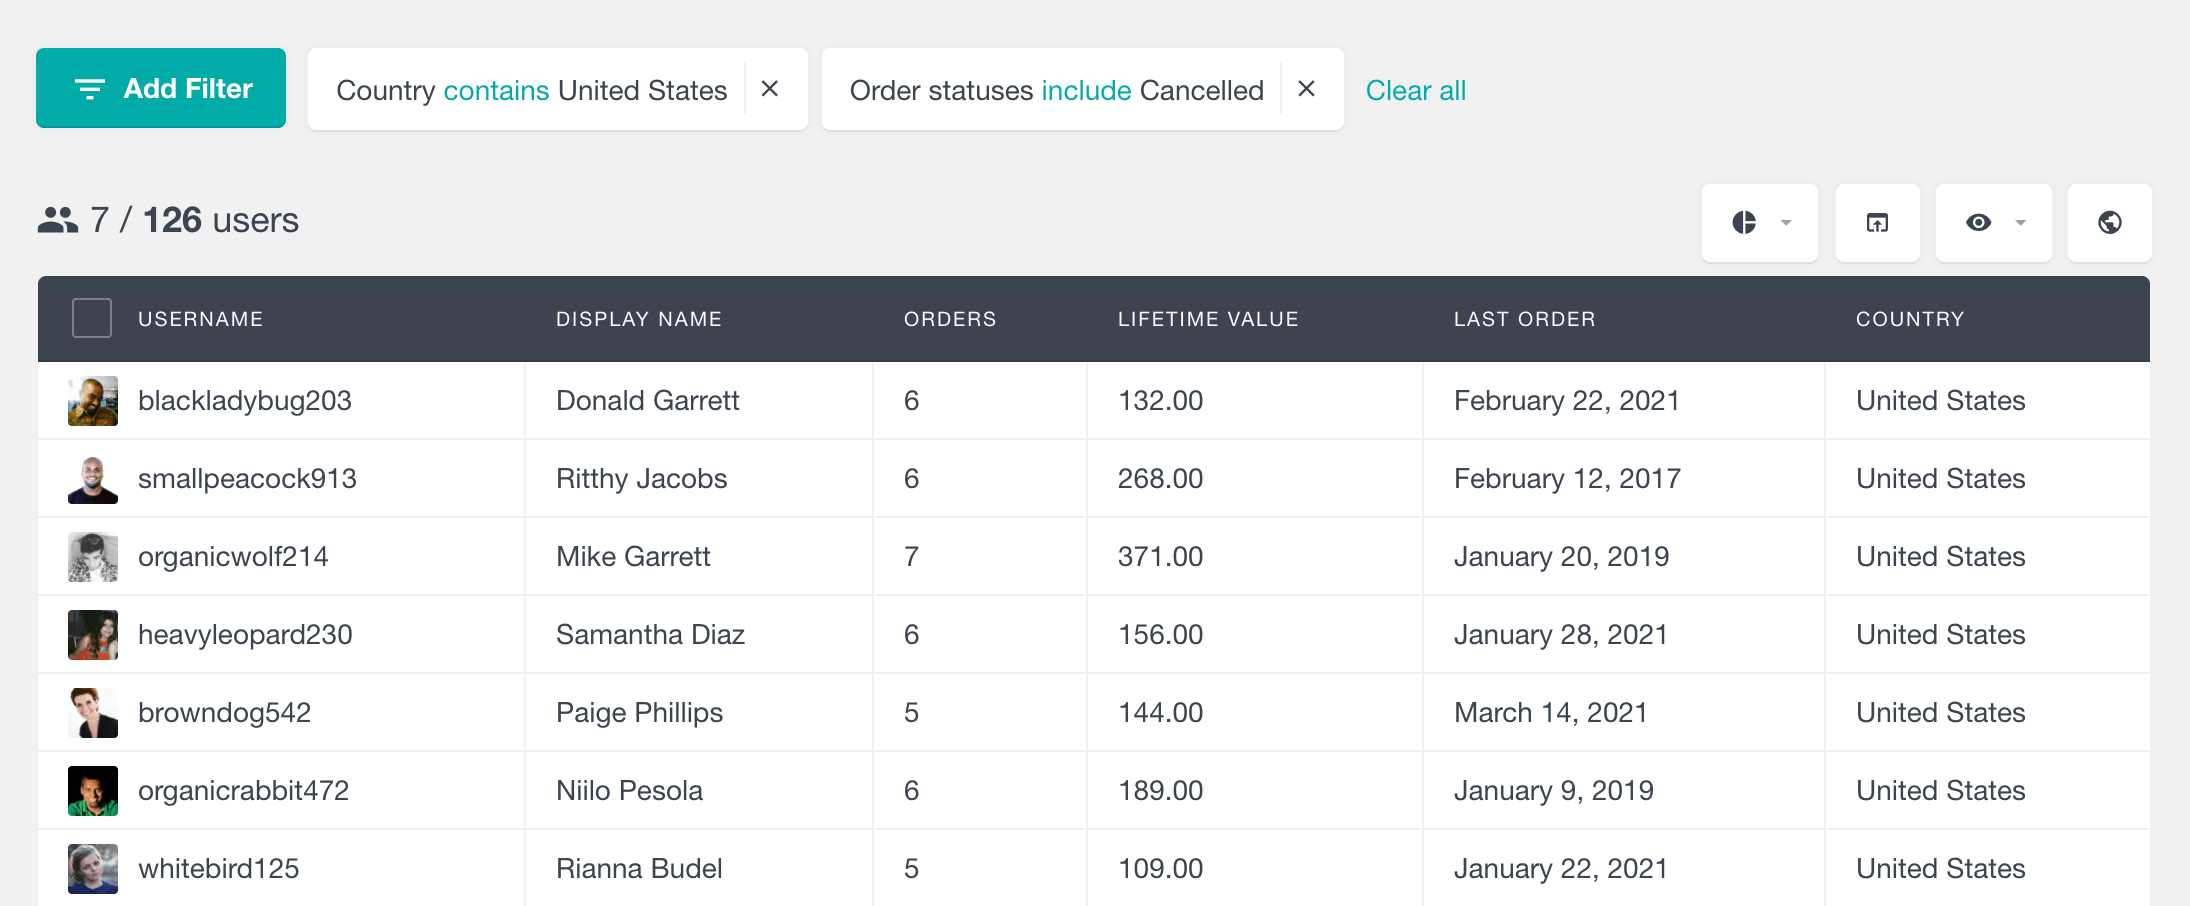 Filter all users who have cancelled their booked services